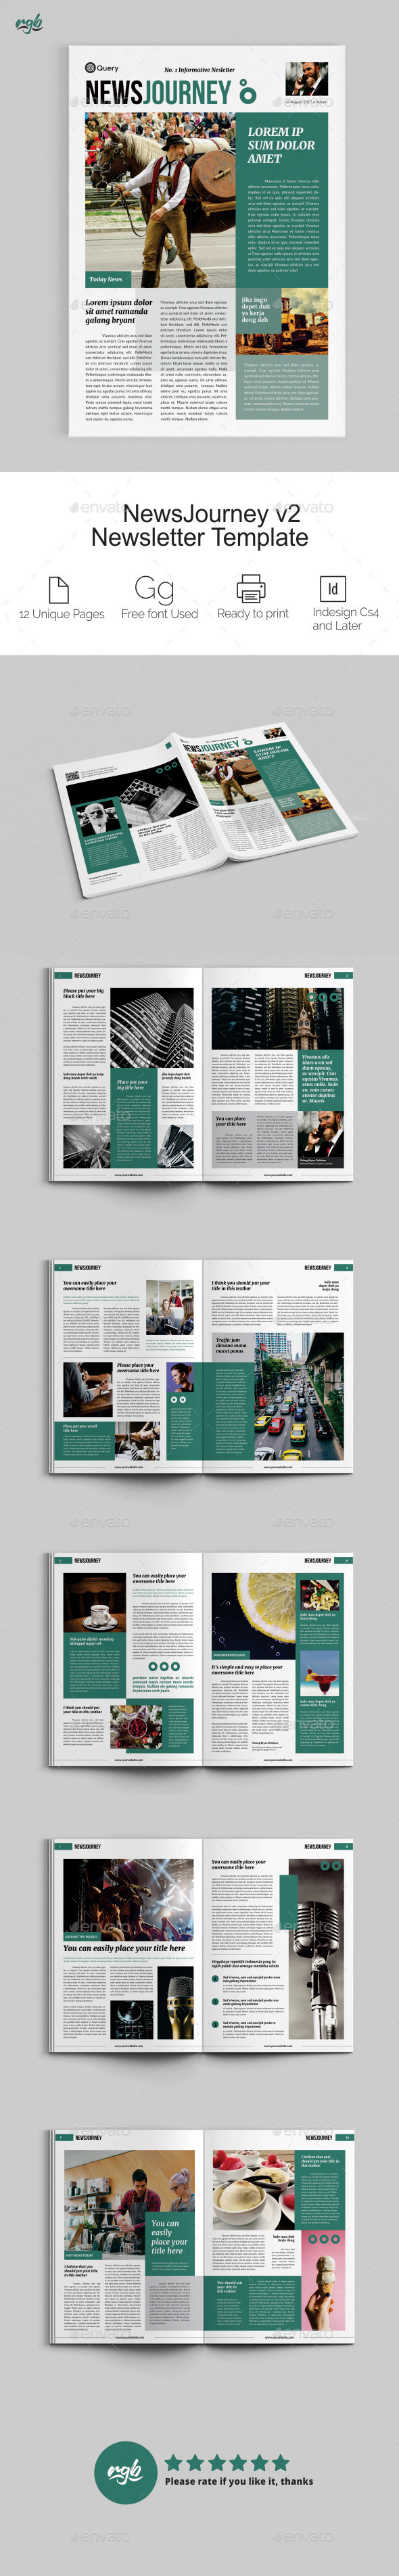 NewsJourney V2 Multipurpose Newsletter - Newsletters Print Templates